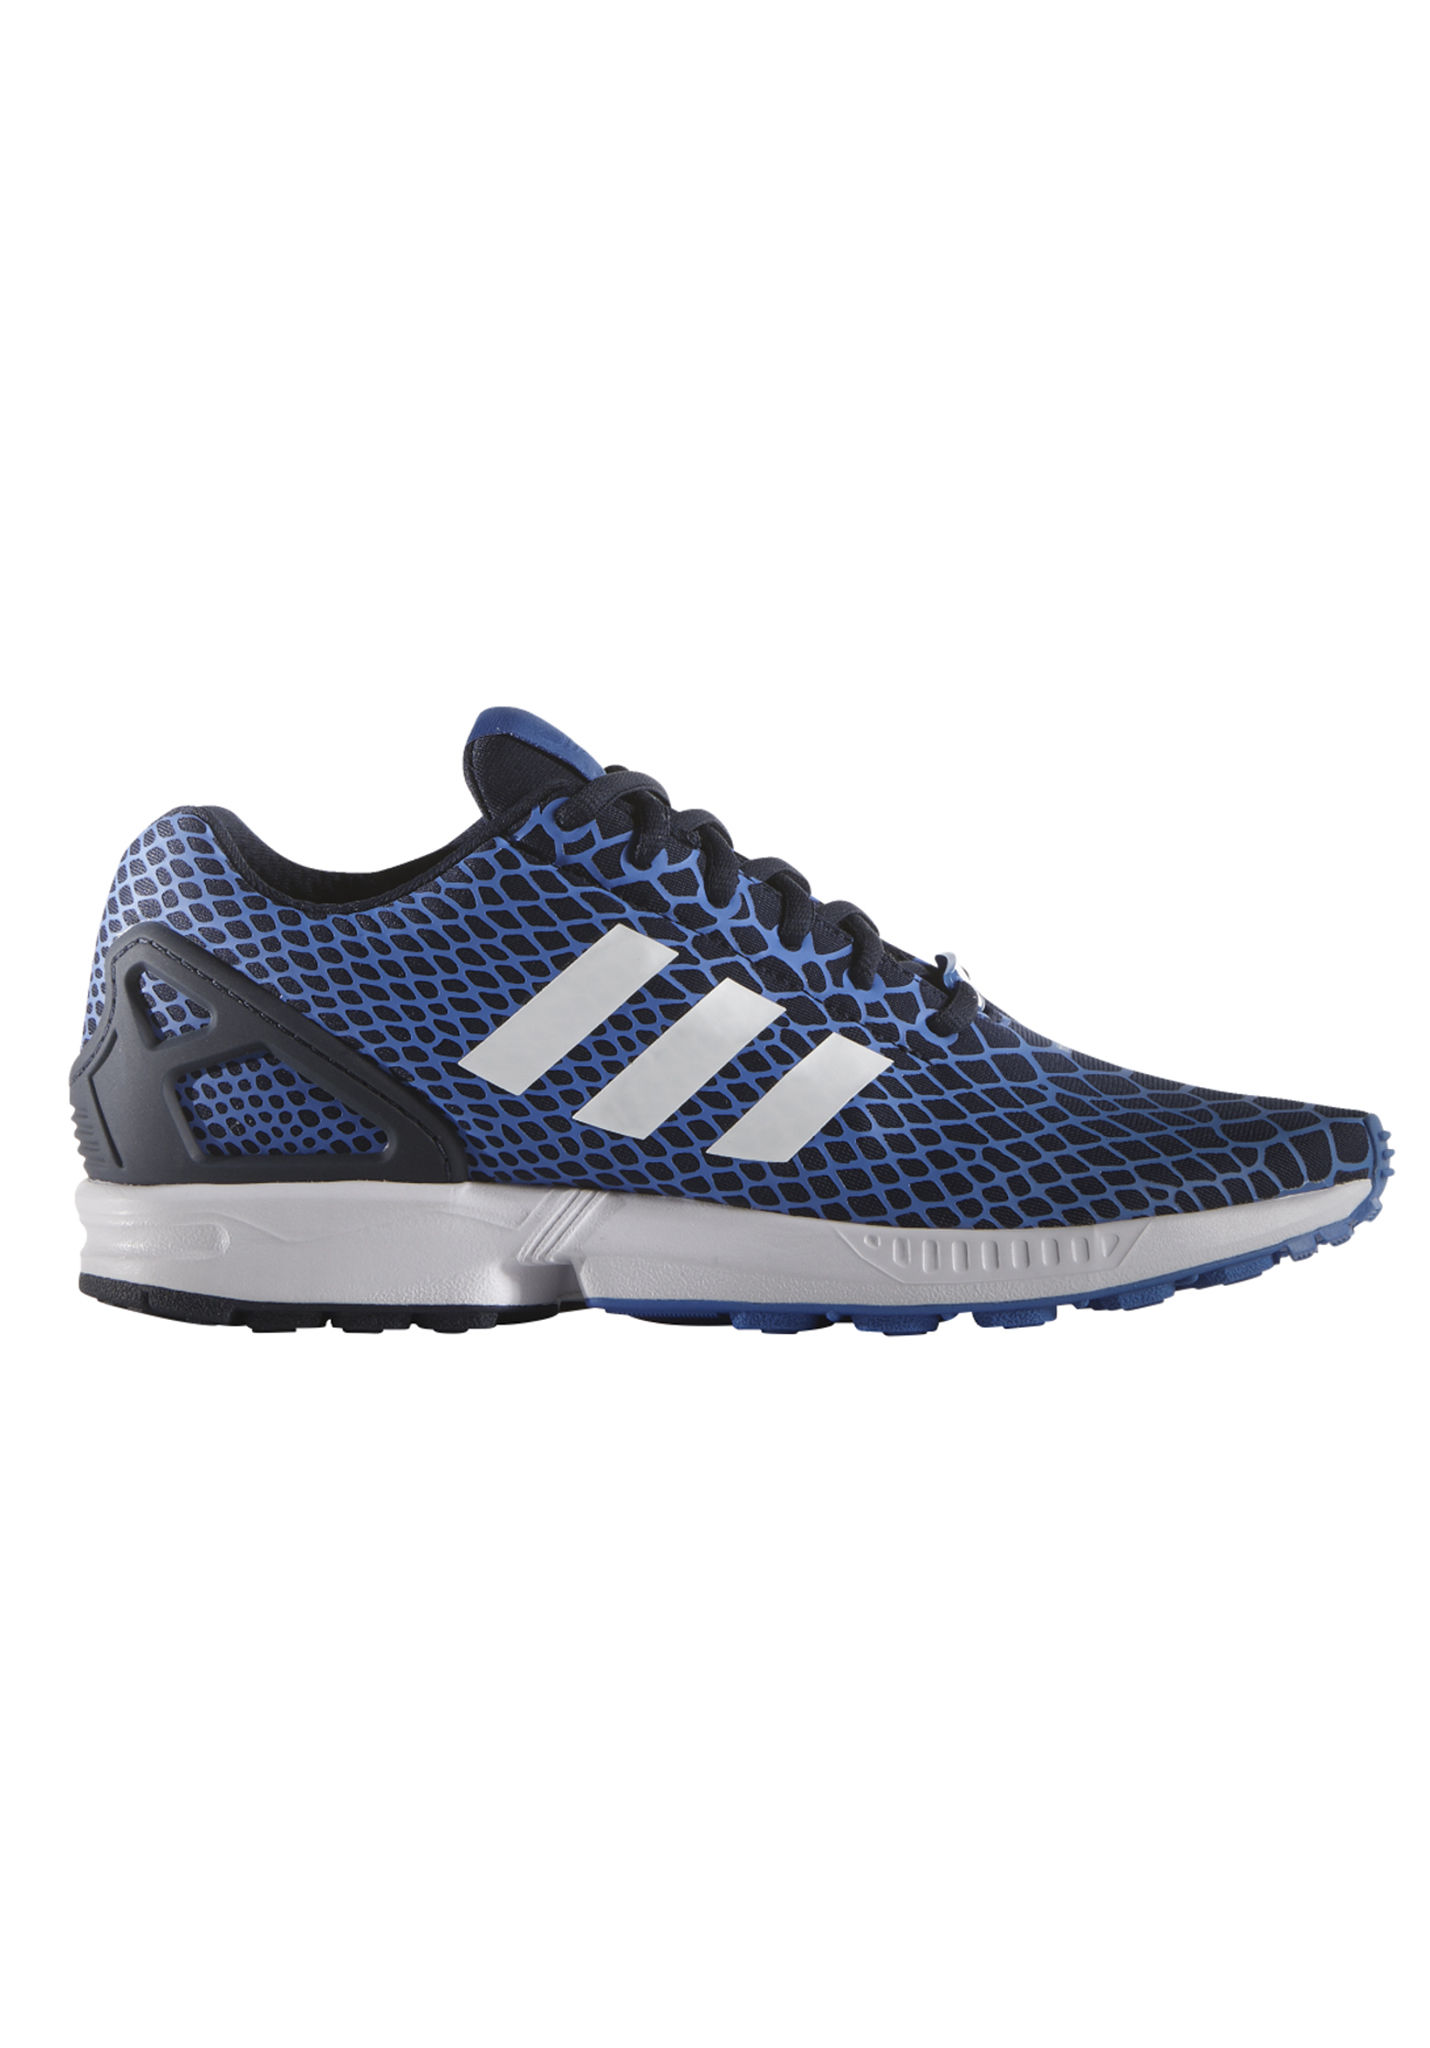 timeless design 12c2a d4e5a adidas torsion blu